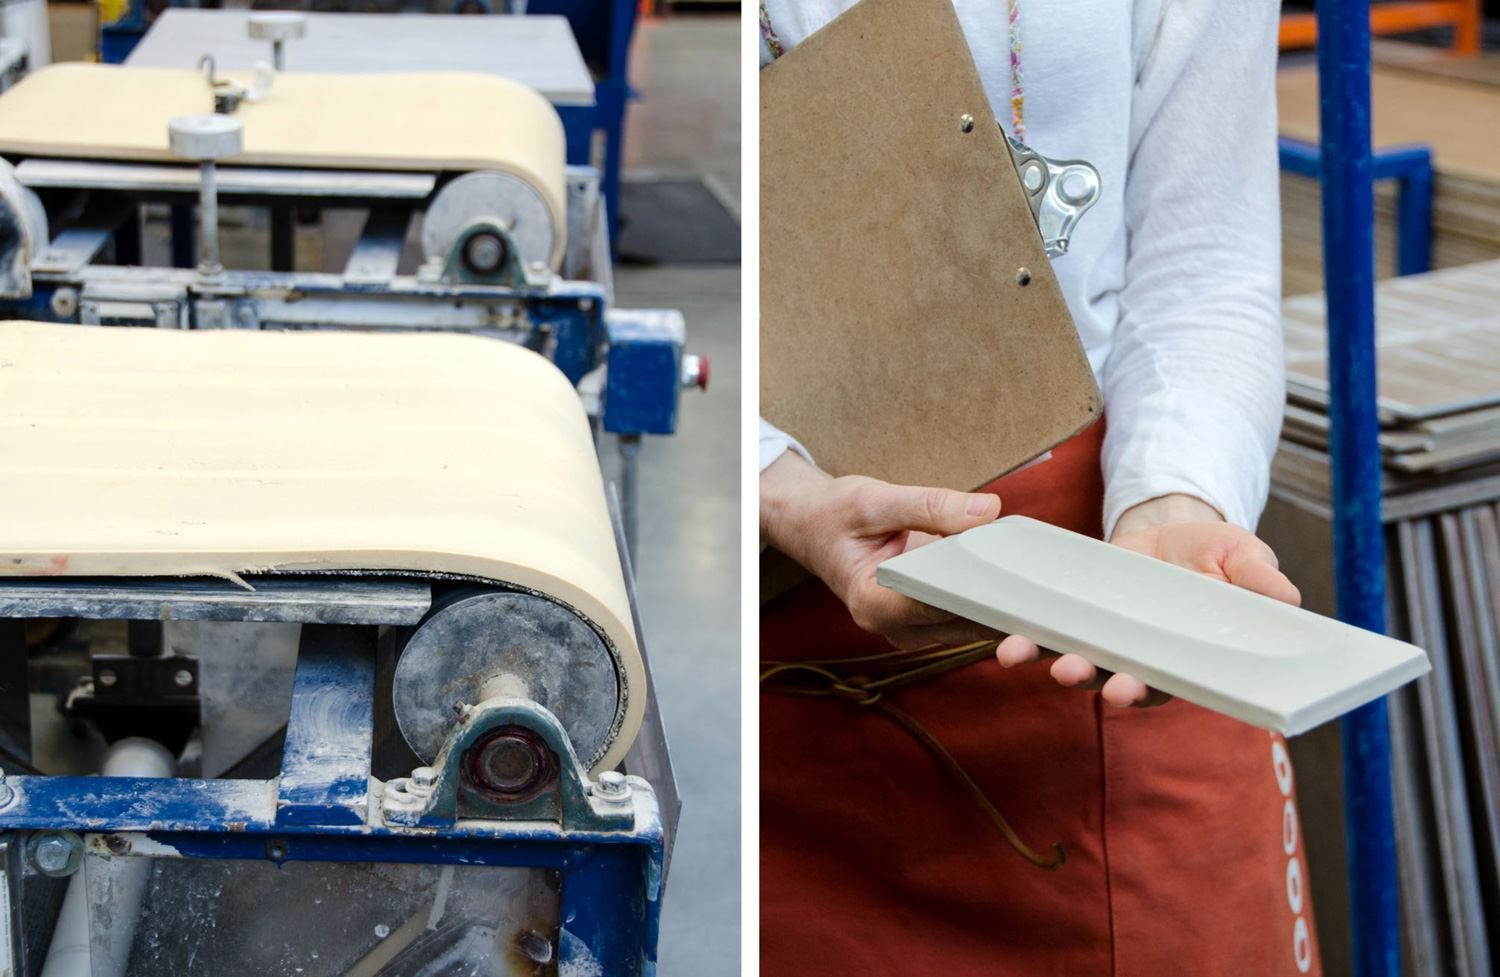 There is a press in the factory that can make dimensional tiles, but they can also be formed by artisans using the sponge belt to transform the shape of flat tile.